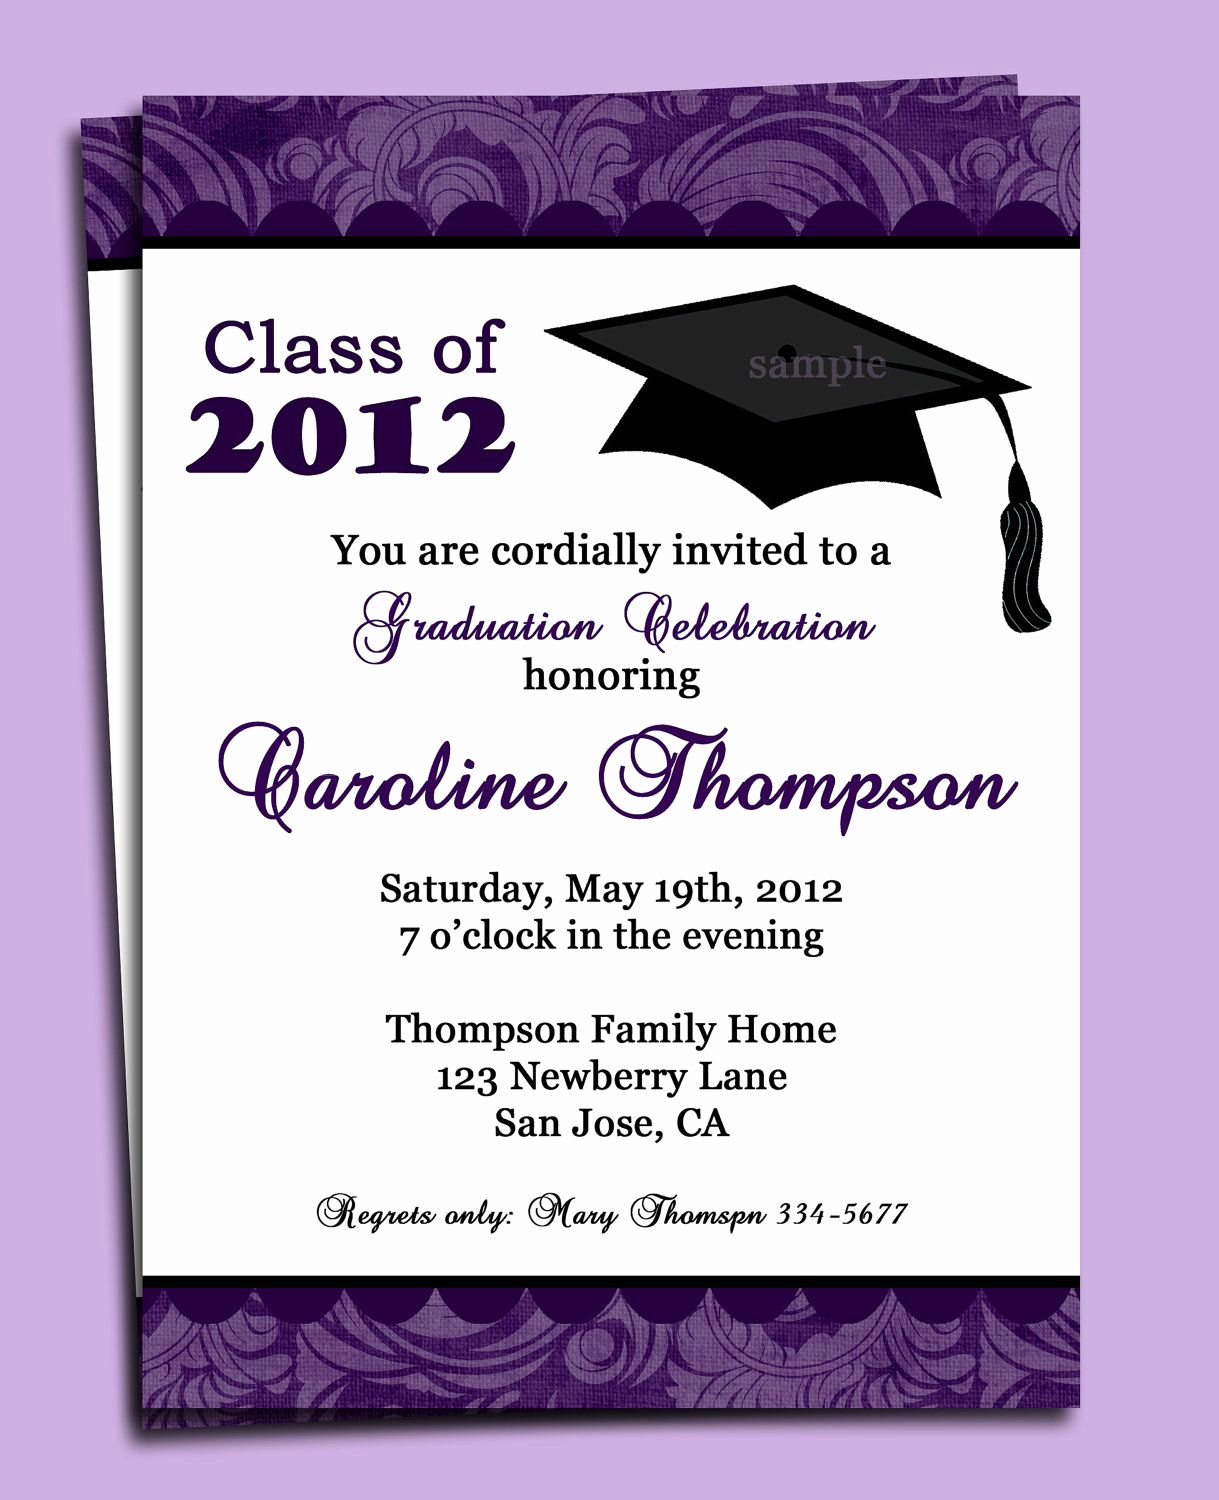 Invitation to Graduation Ceremony Beautiful Graduation Party or Announcement Invitation Printable